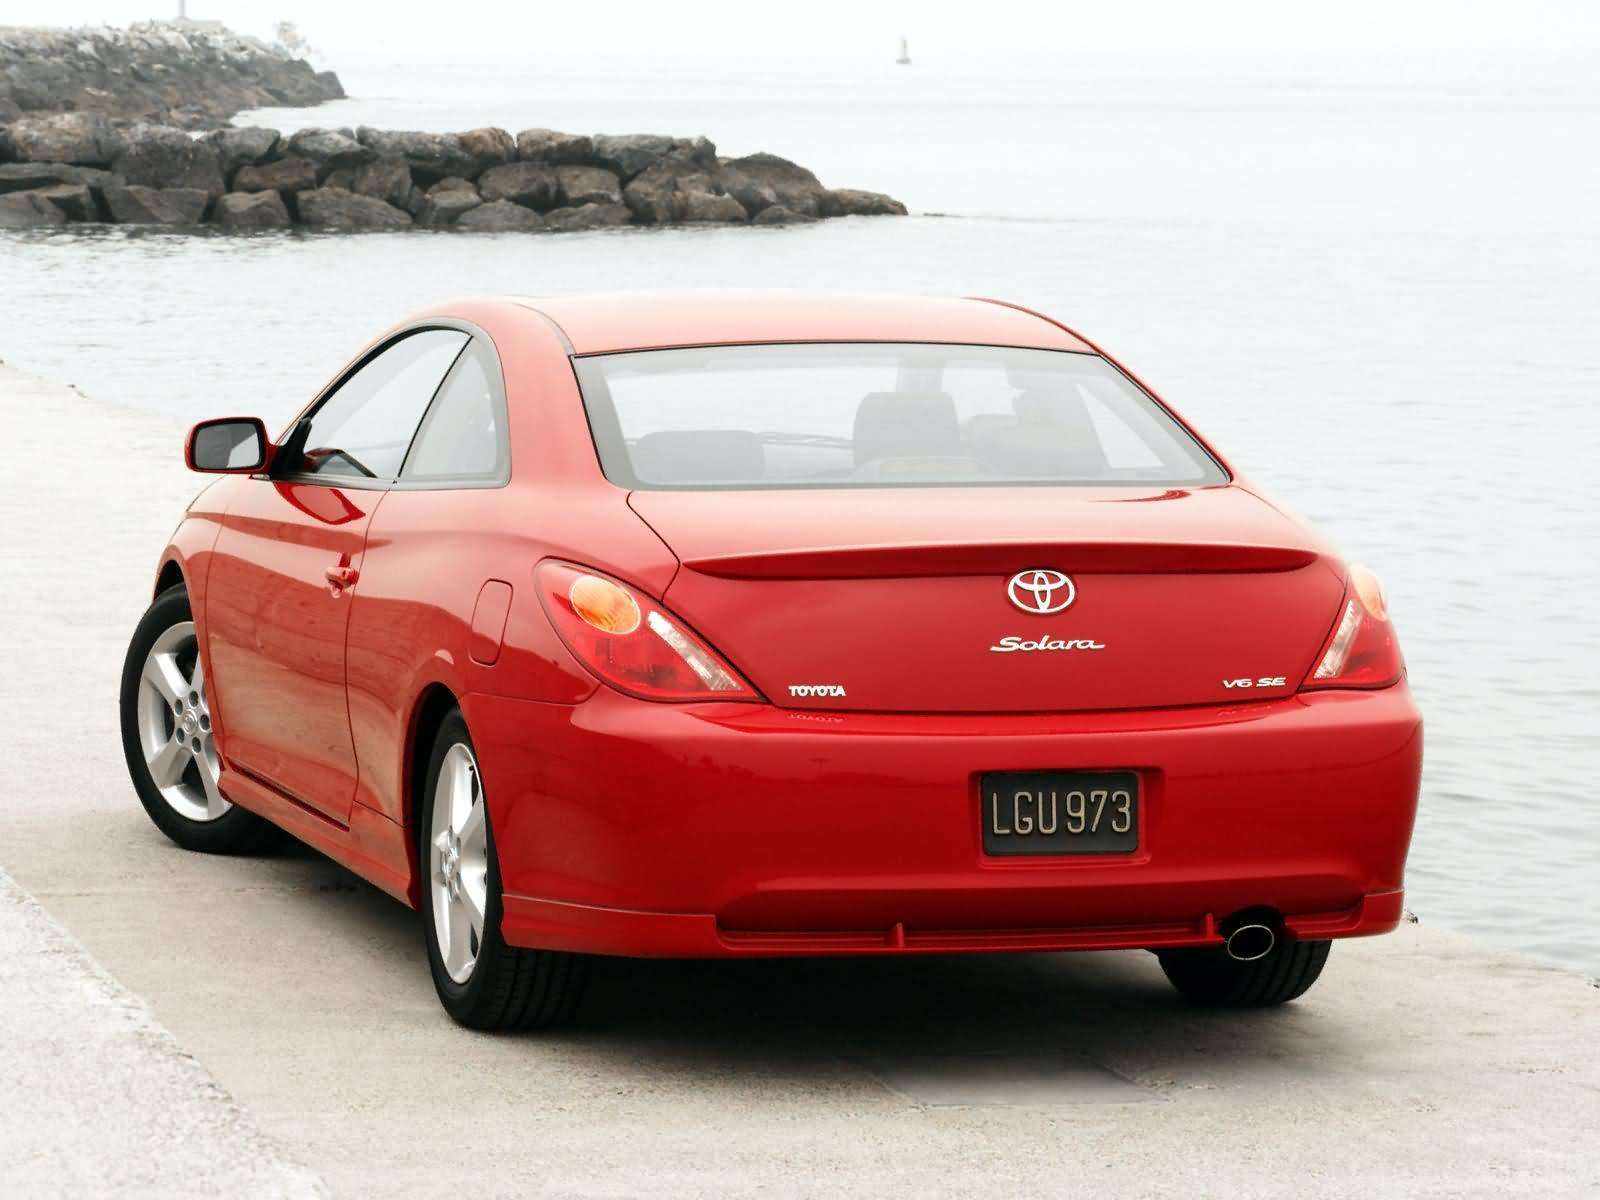 3dtuning Of Toyota Camry Solara Coupe 1999 3dtuning Com